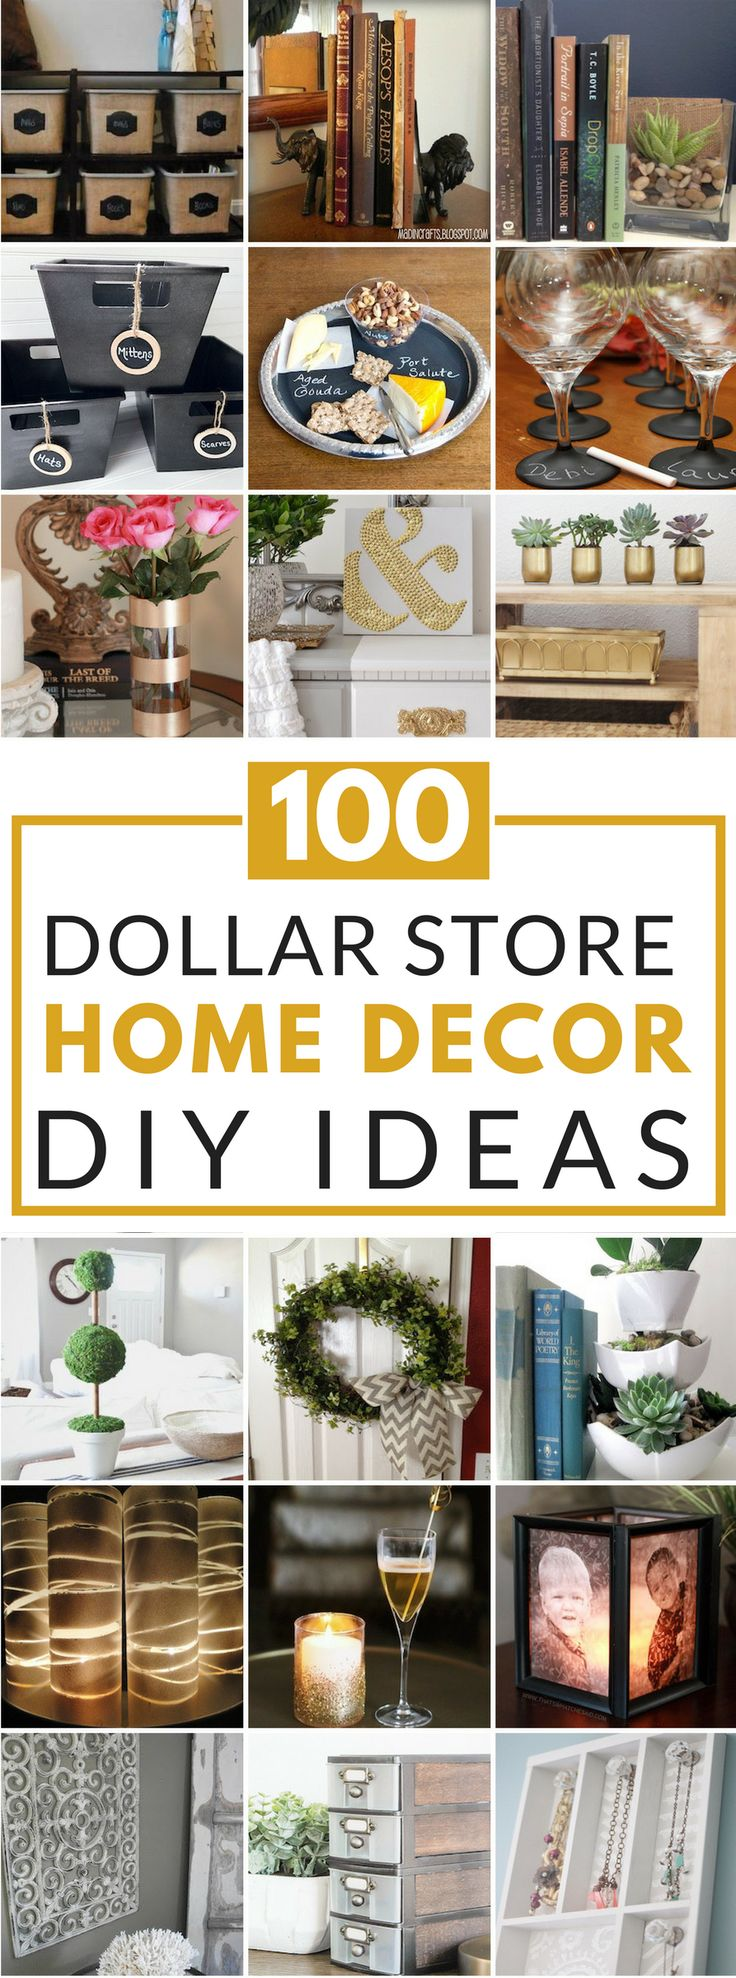 Https Www Pinterest Com Explore Dollar Tree Decor